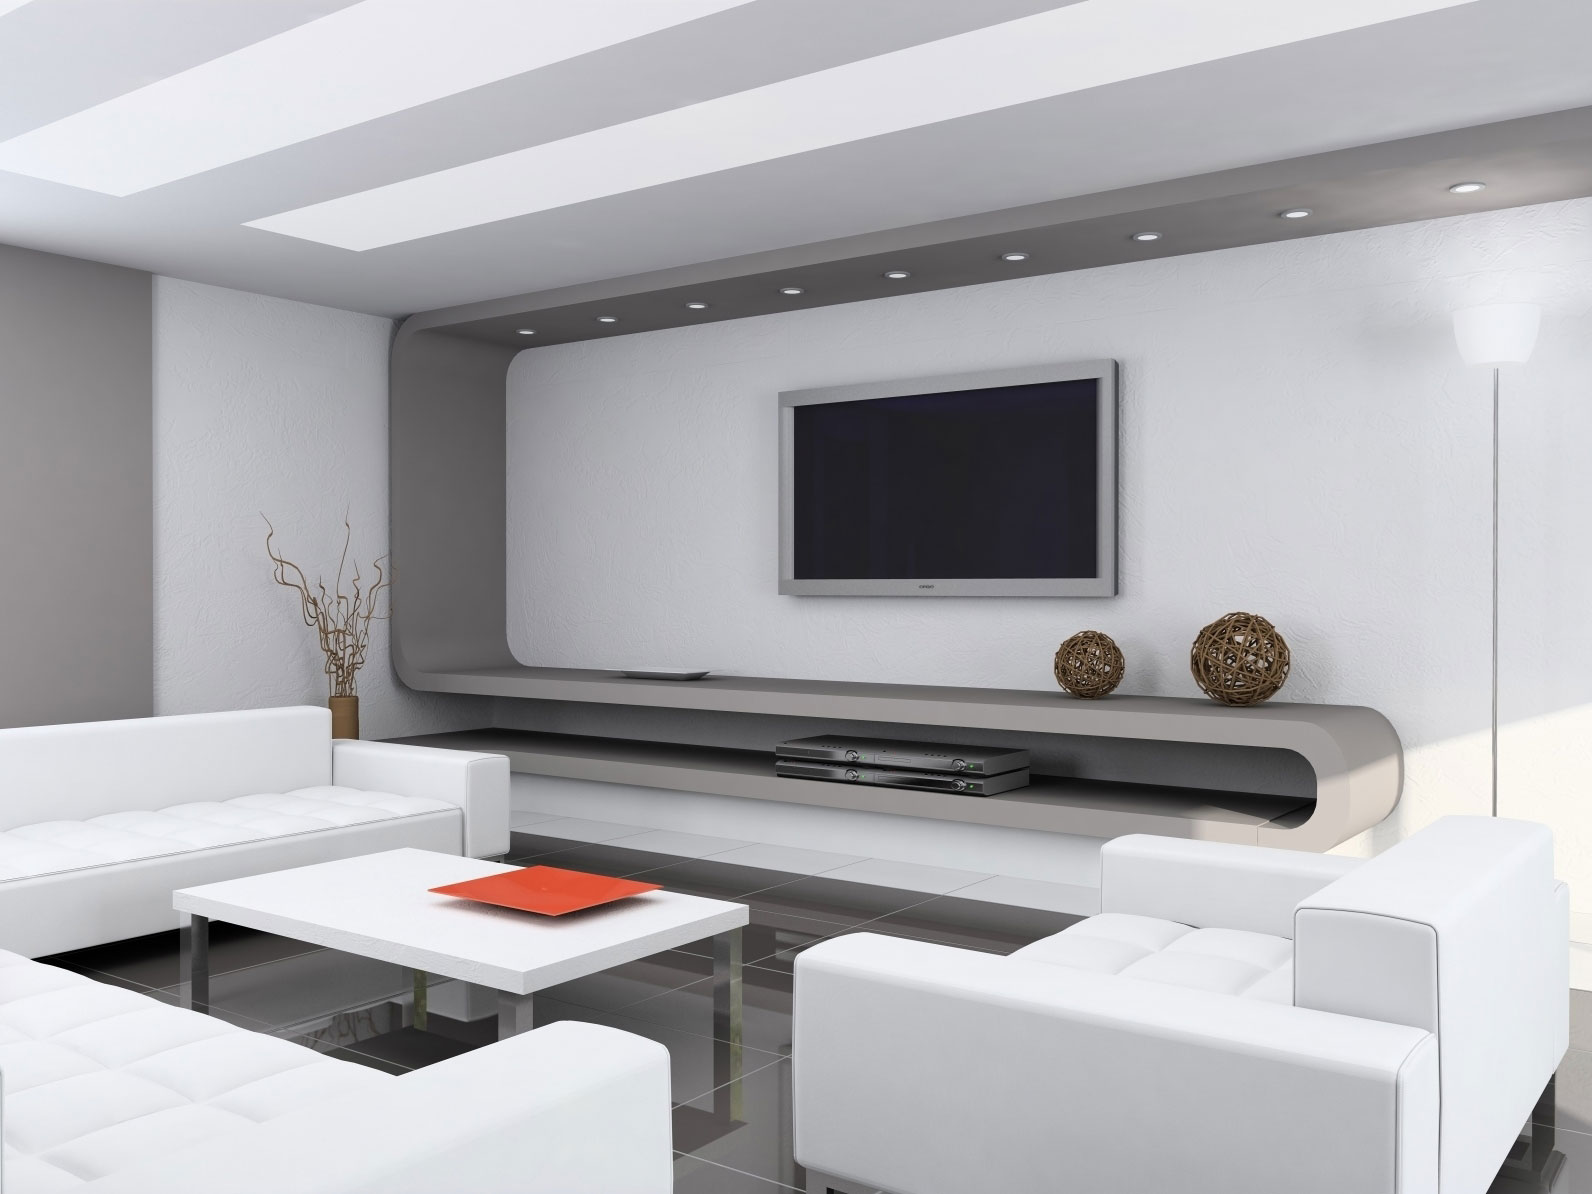 New blog pics hd wallpaper living room for Room design hd image